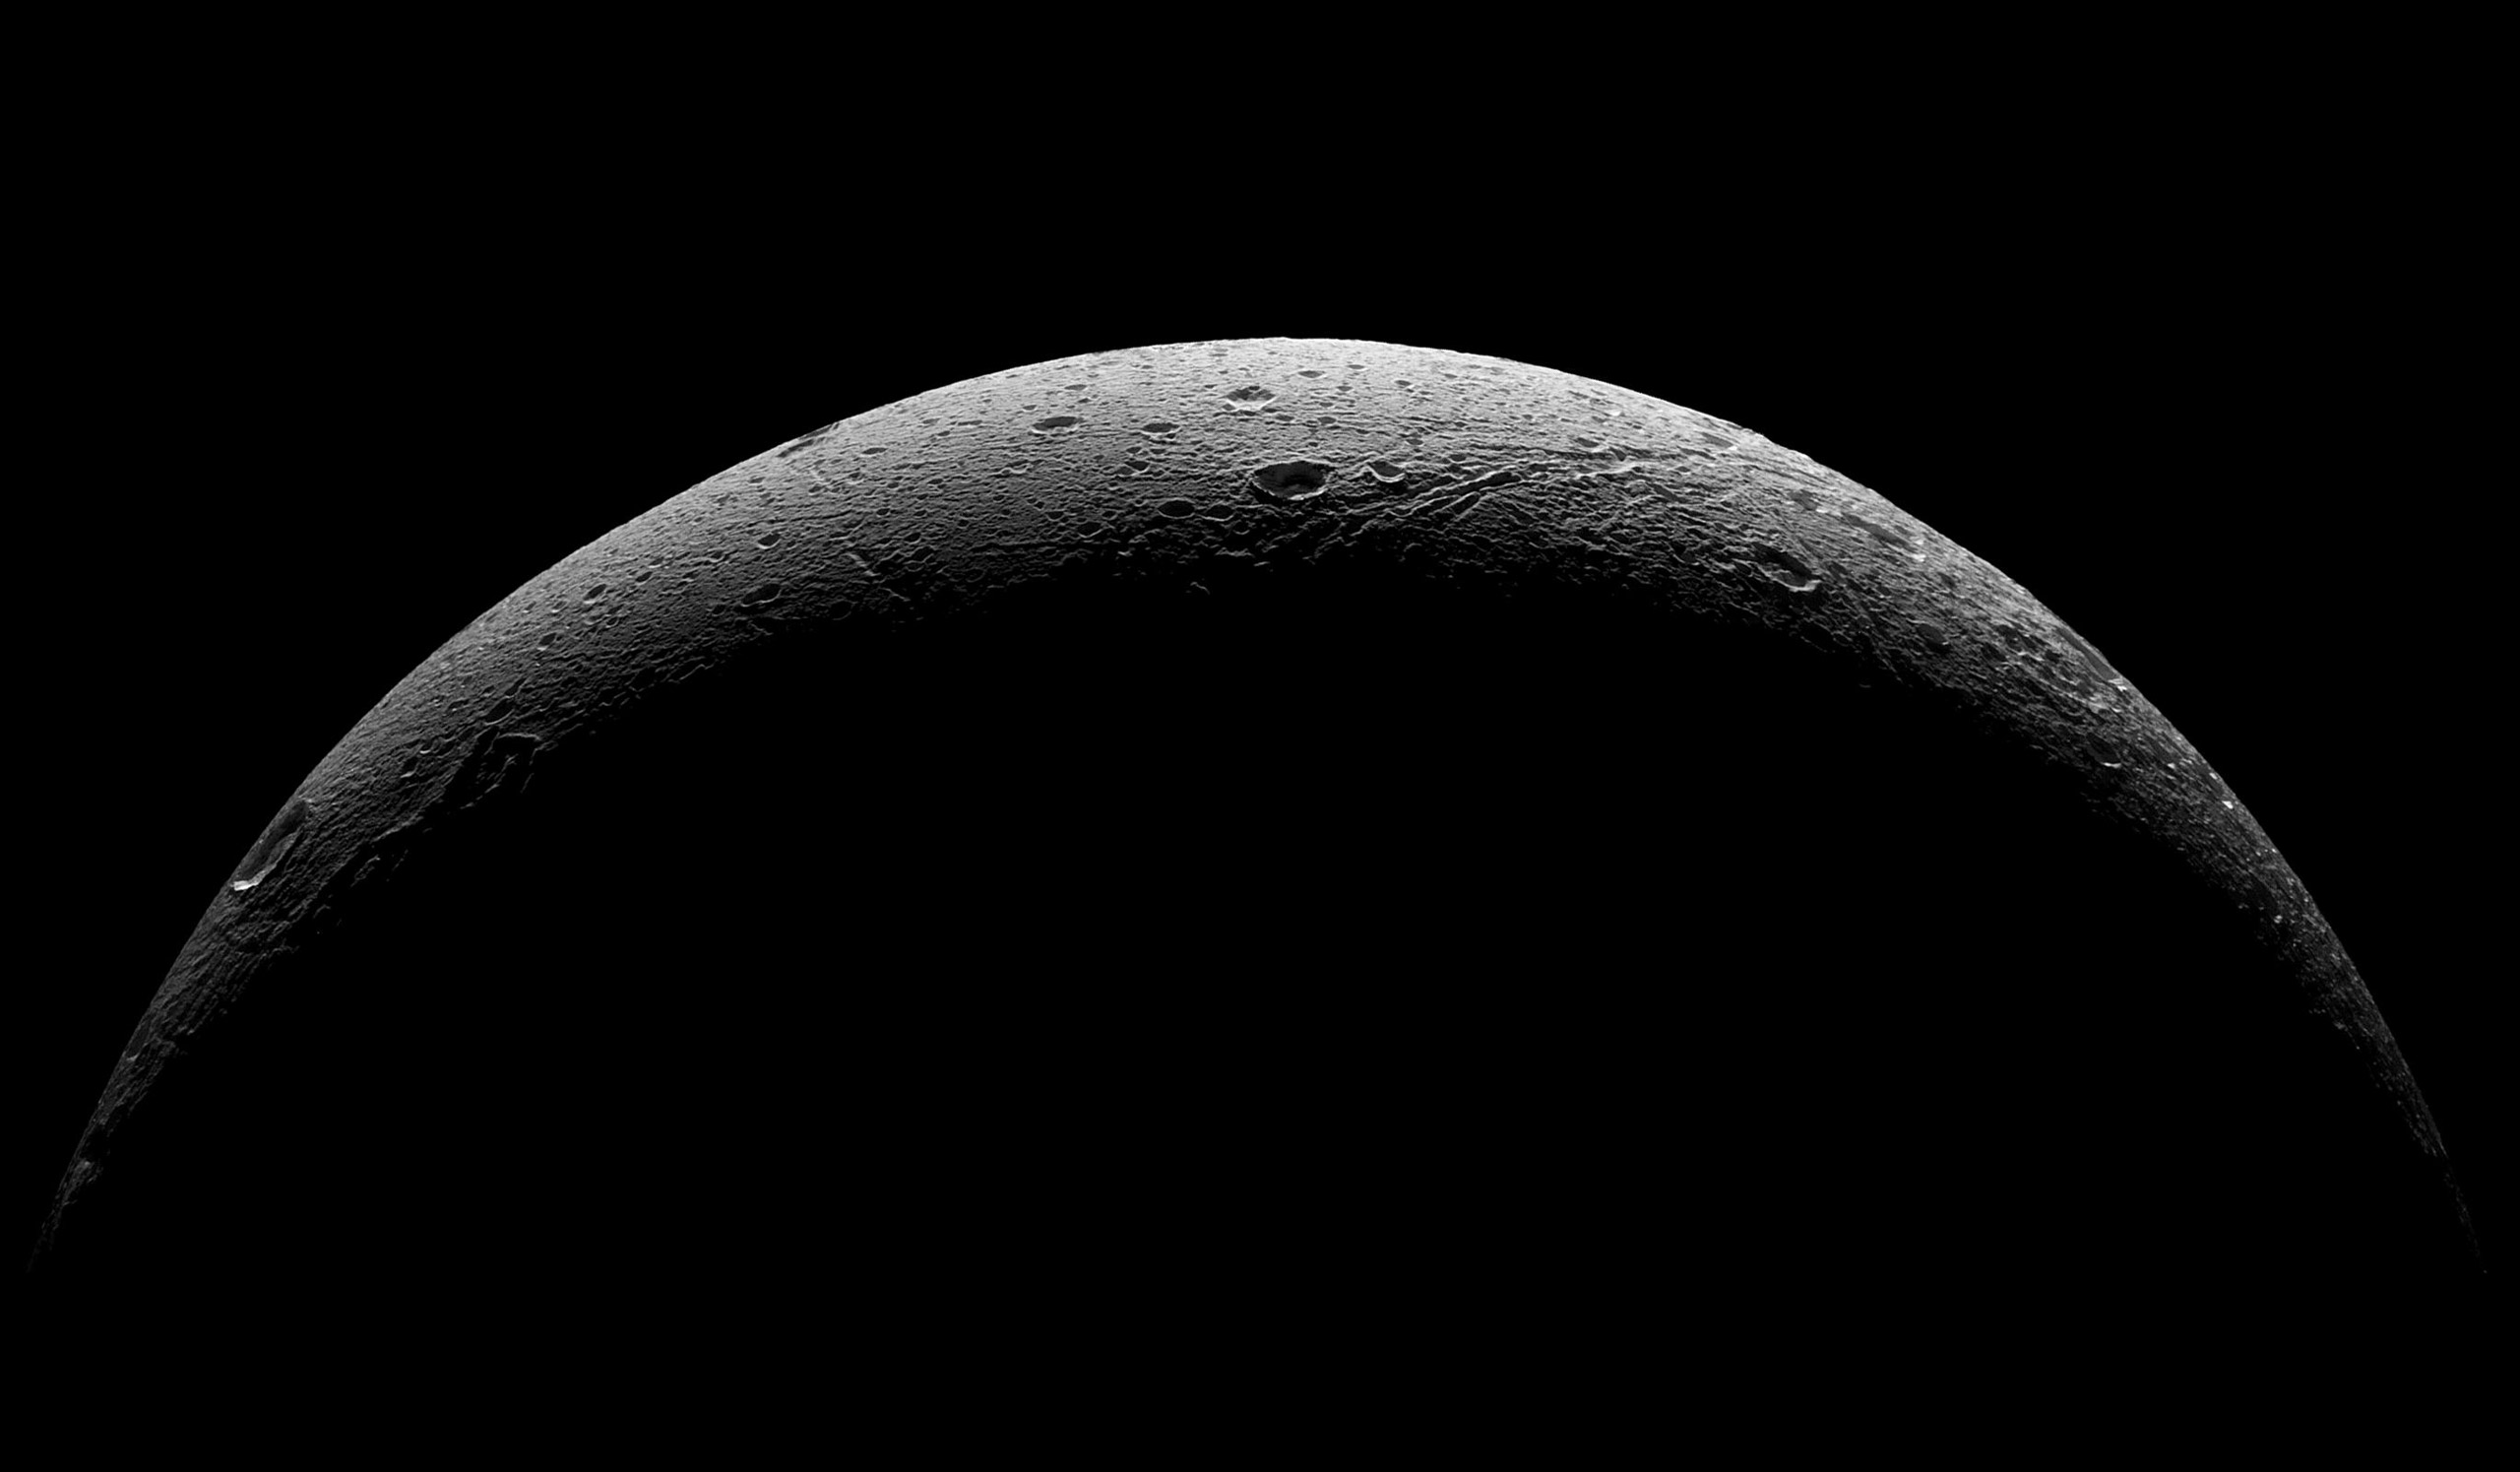 NASA's Cassini spacecraft captured this parting view showing the rough and icy crescent of Saturn's moon Dione following the spacecraft's last close flyby on Aug. 17, 2015. The image was captured from a distance of 37,000 to 47,000 miles.